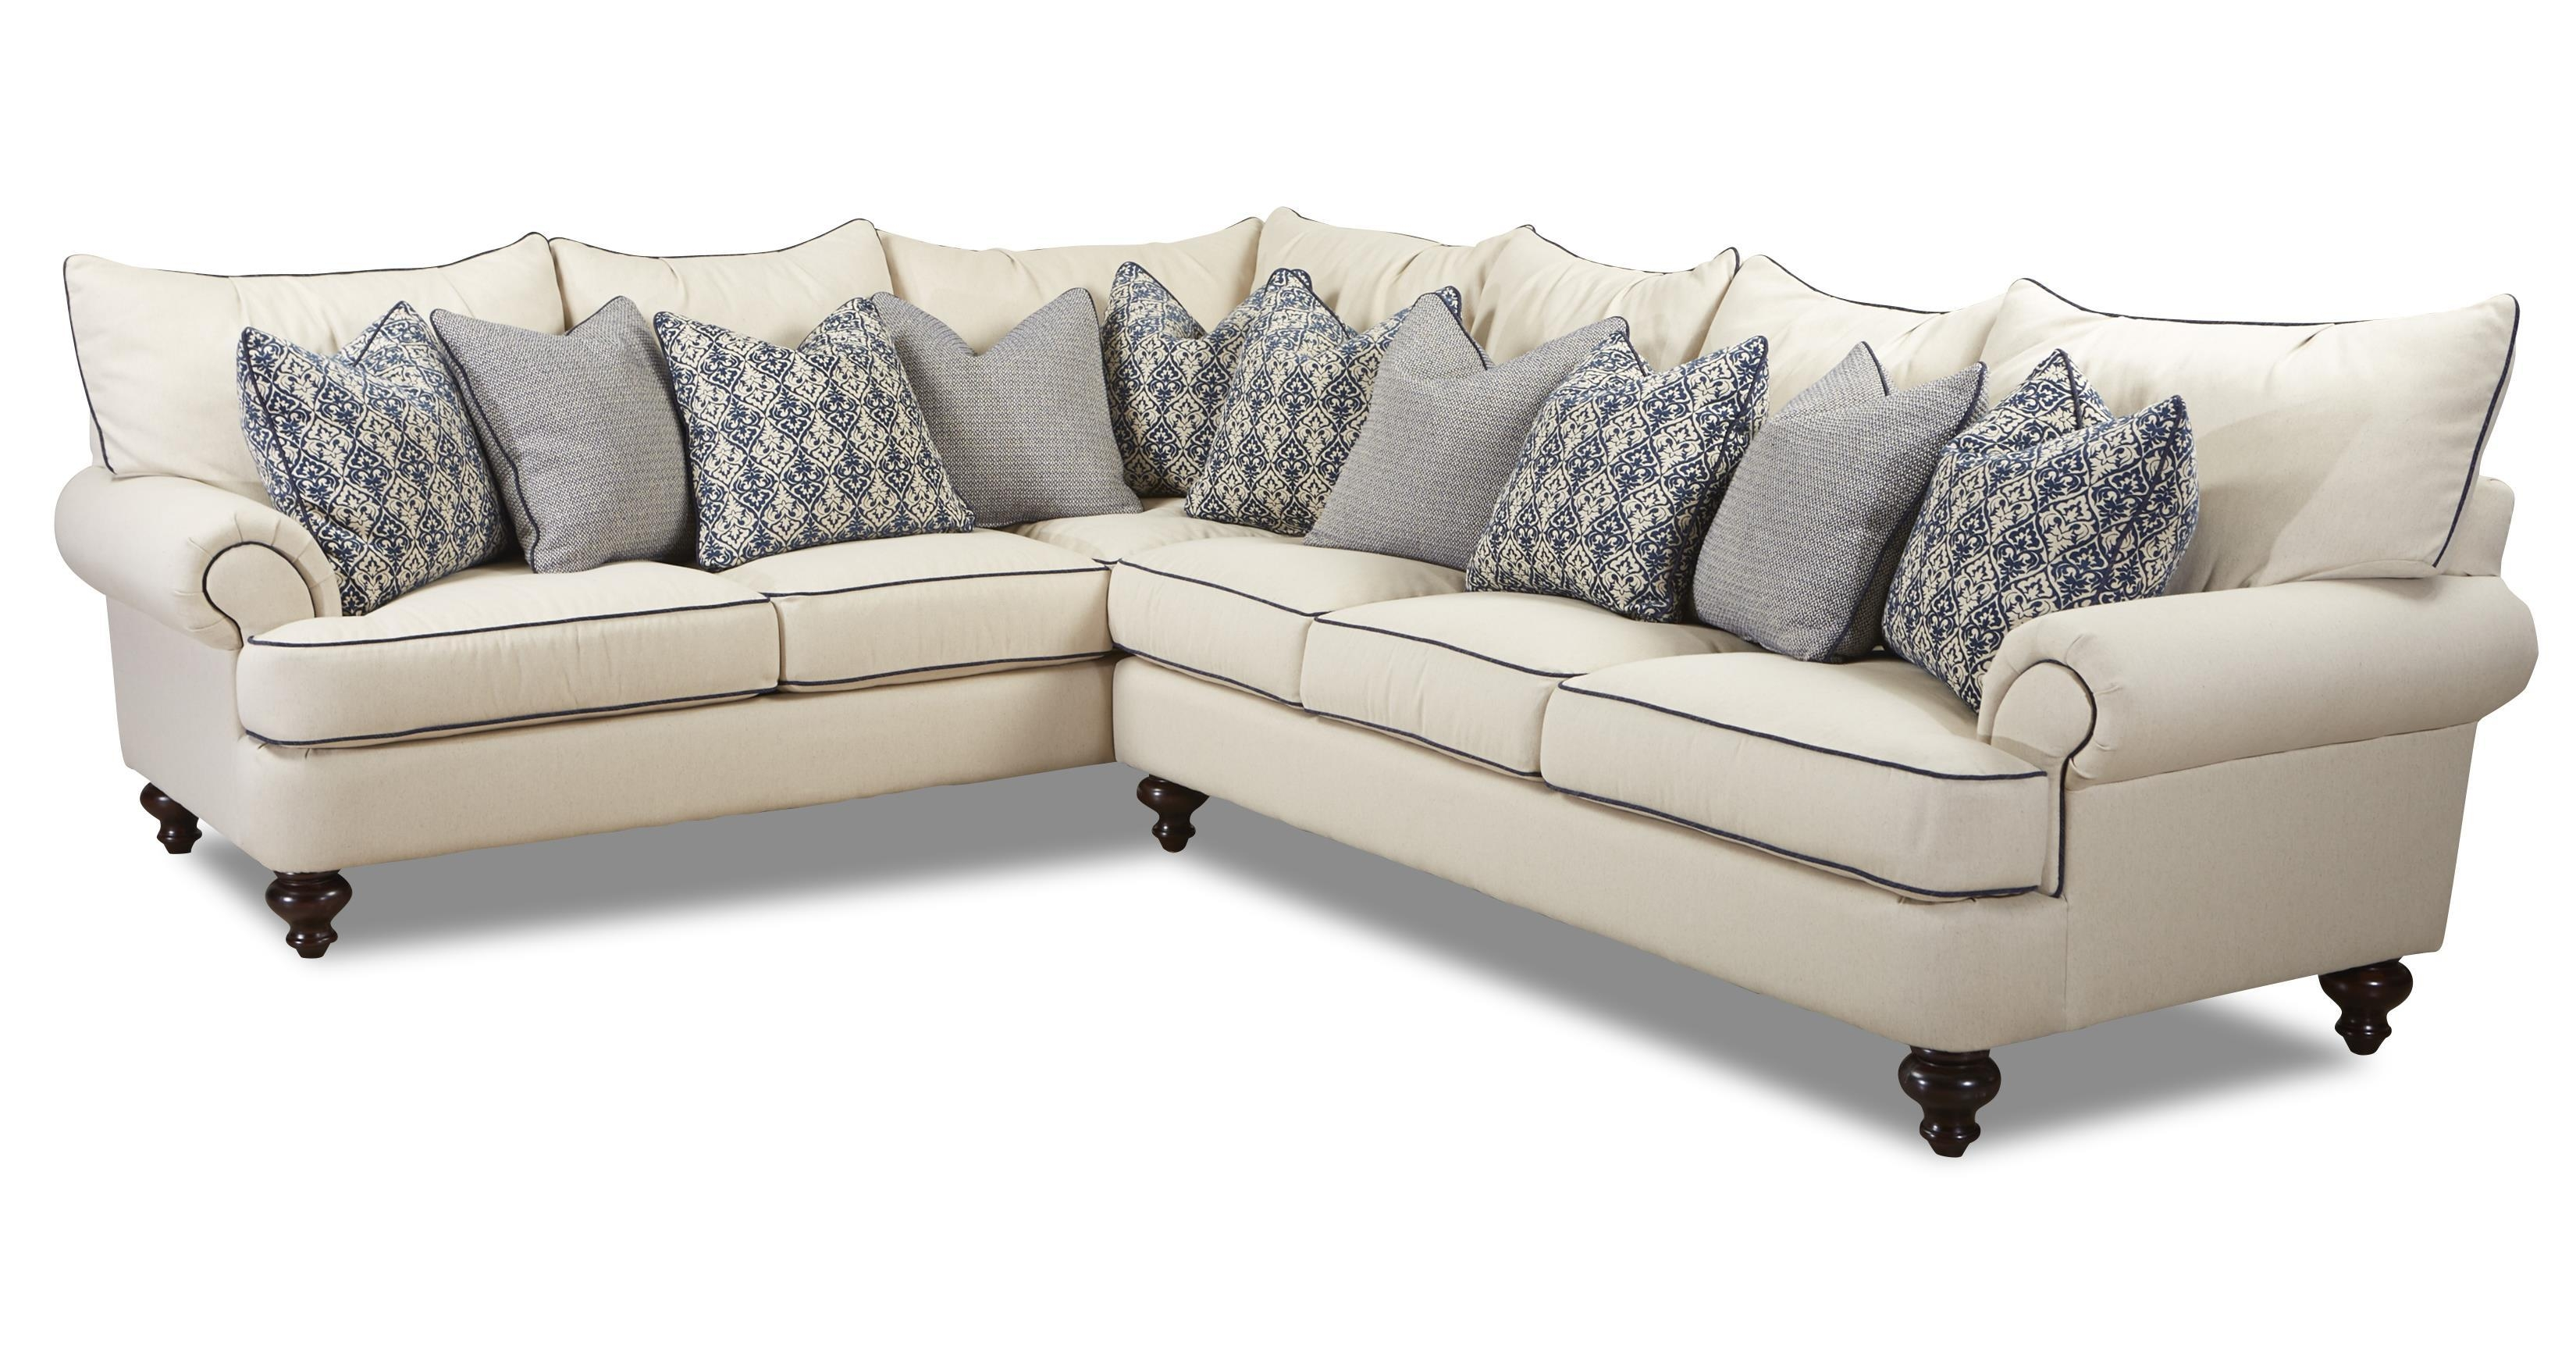 Featured Image of Shabby Chic Sectional Sofas